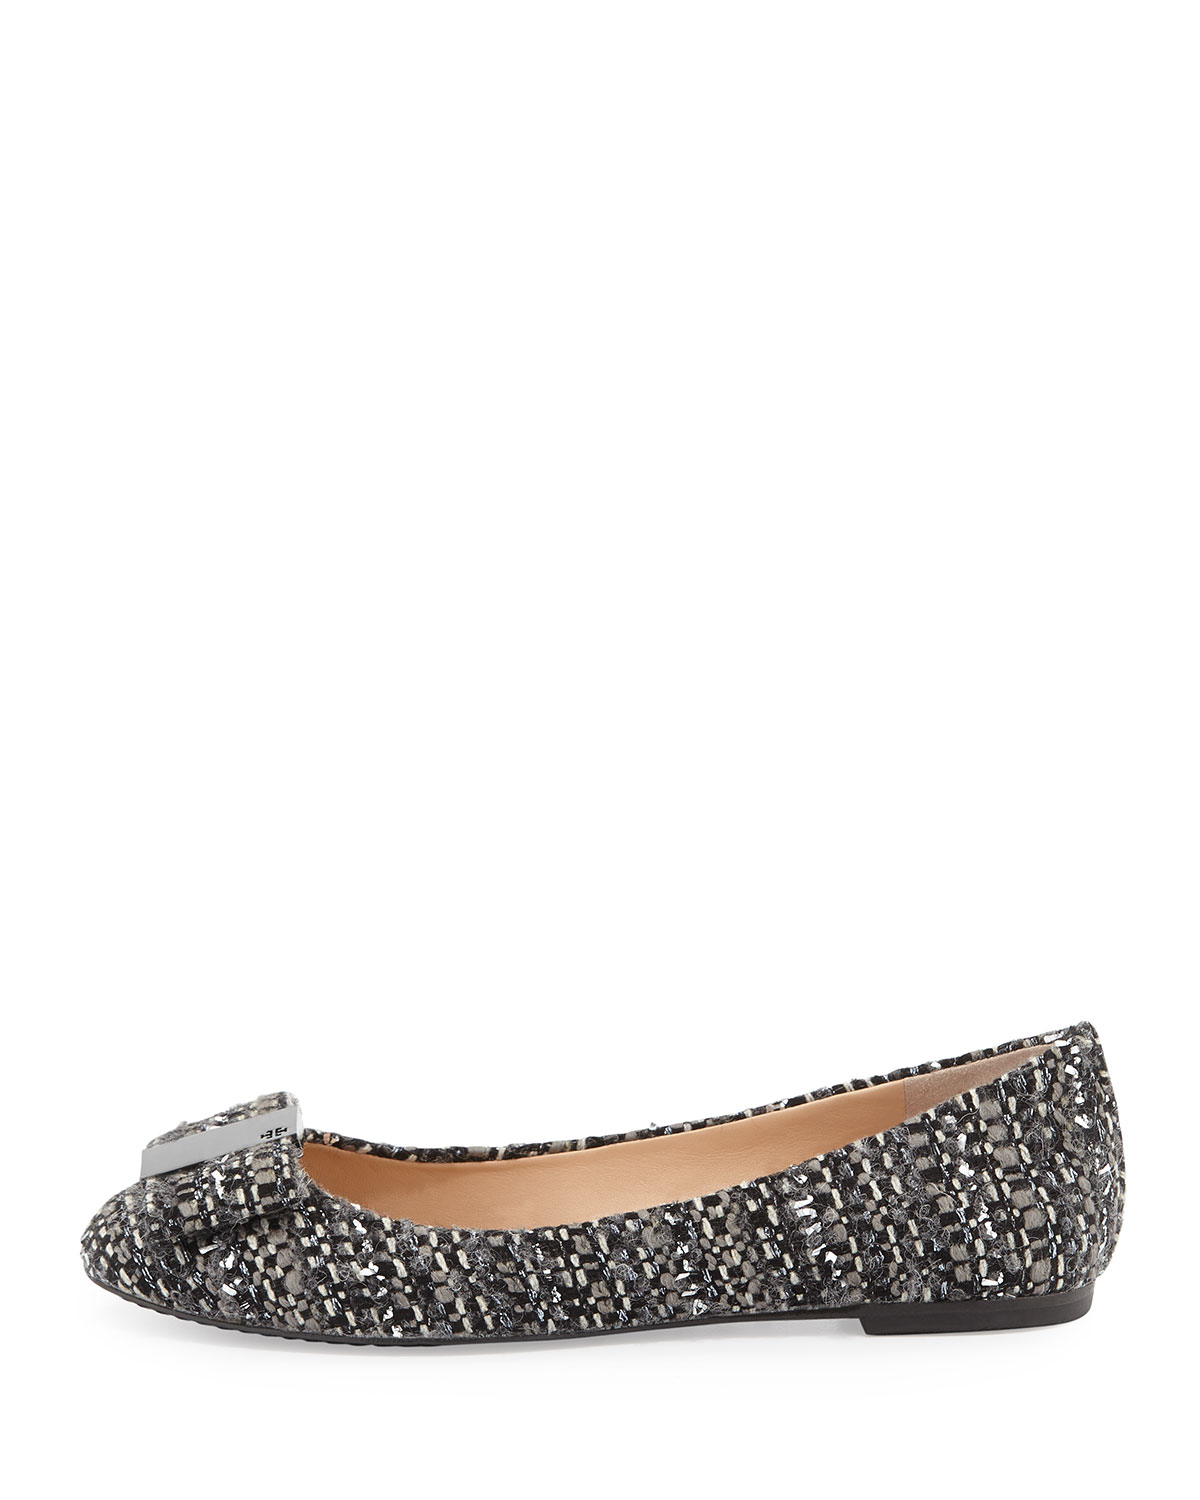 Lyst Tory Burch Chase Tweed Bow Ballerina Flat In Black